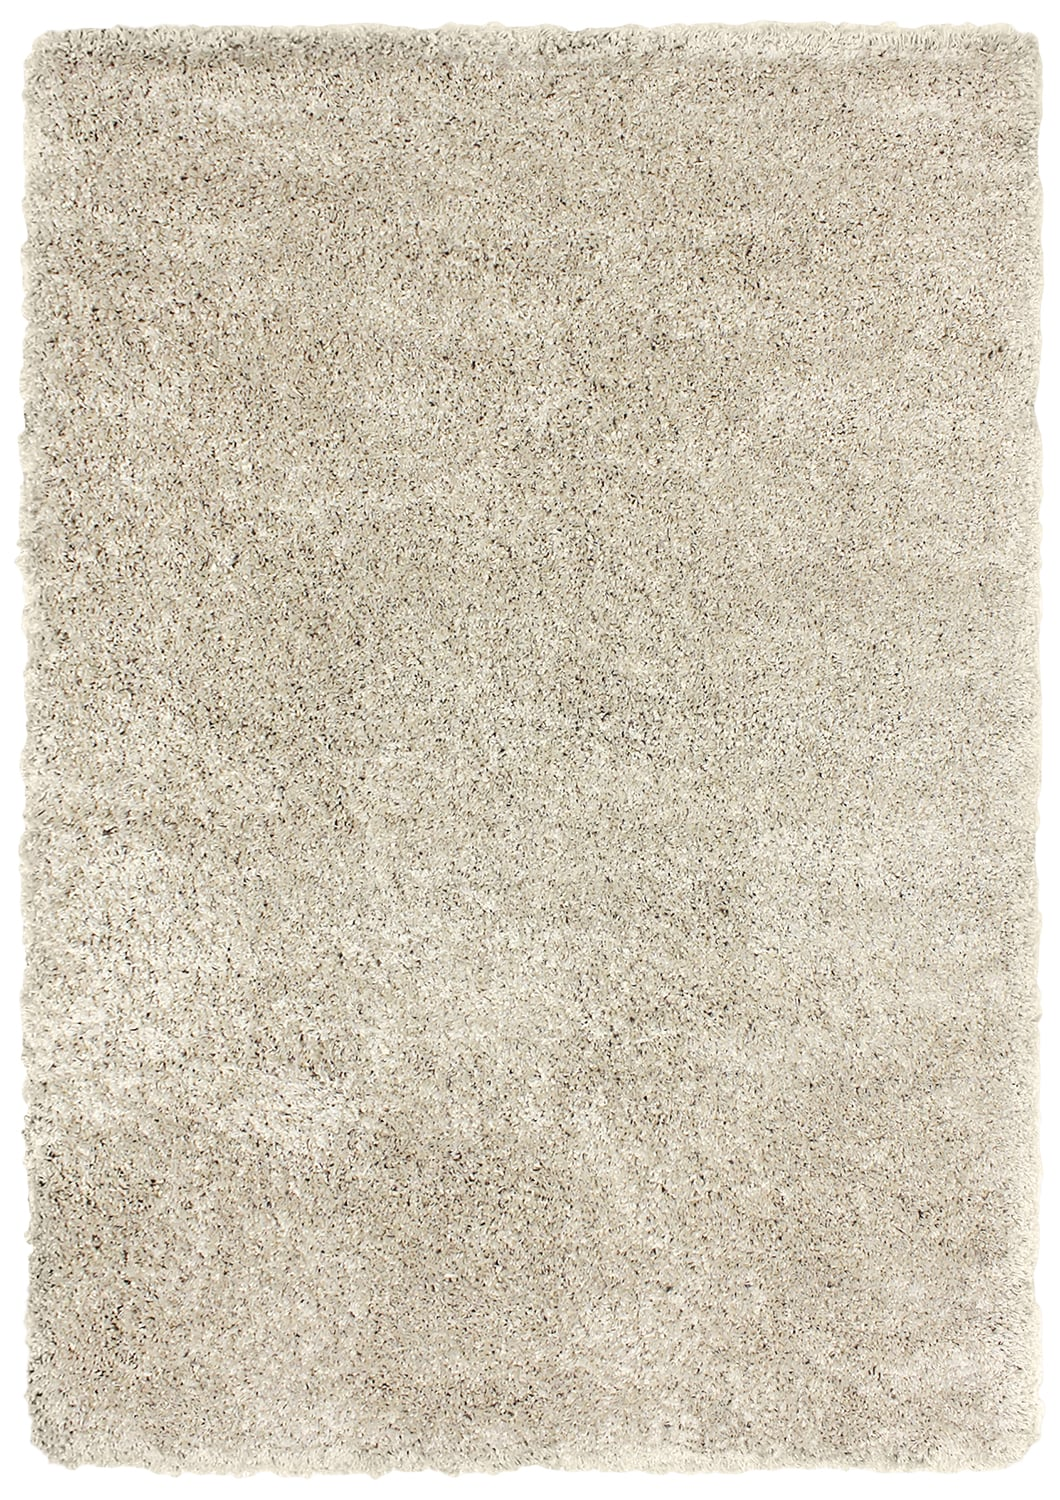 Loft Linen-Coloured Shag Area Rug – 7' x 10'